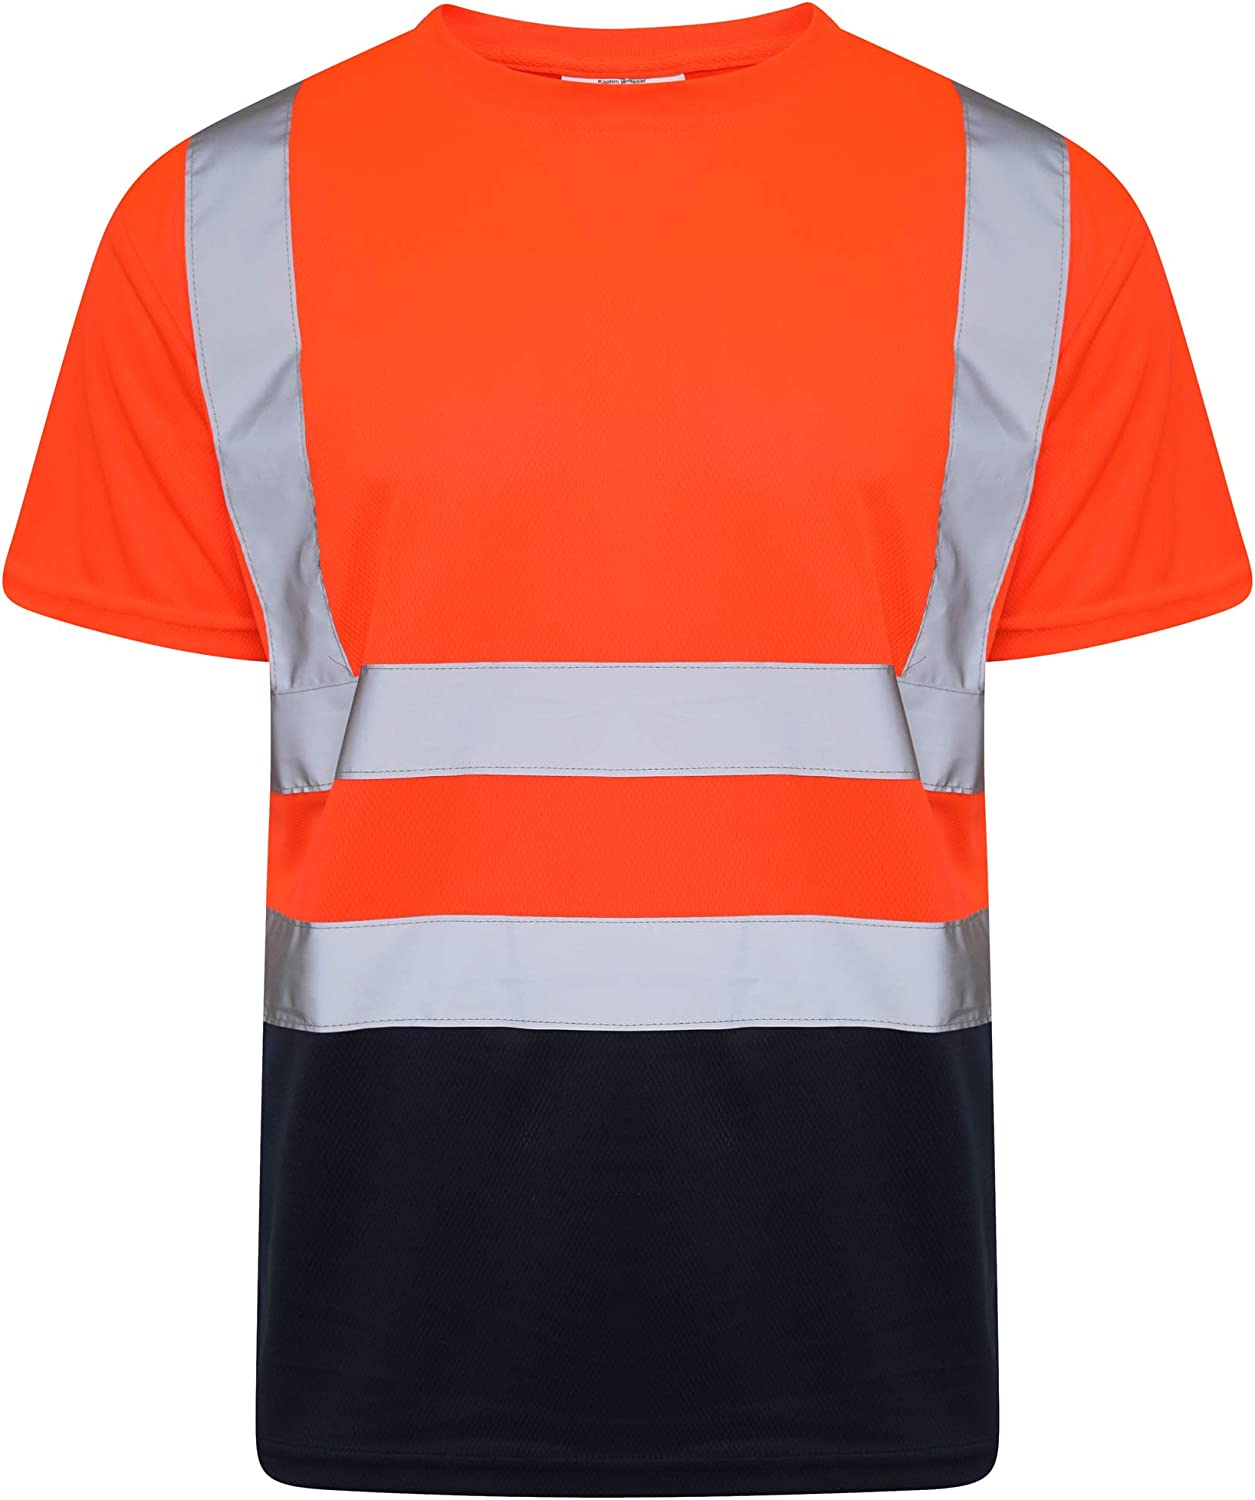 High Visibility Premium Material Inspire Me Hi Viz Short Sleeve T-Shirts Easy to Wash Breathable Soft and Comfortable